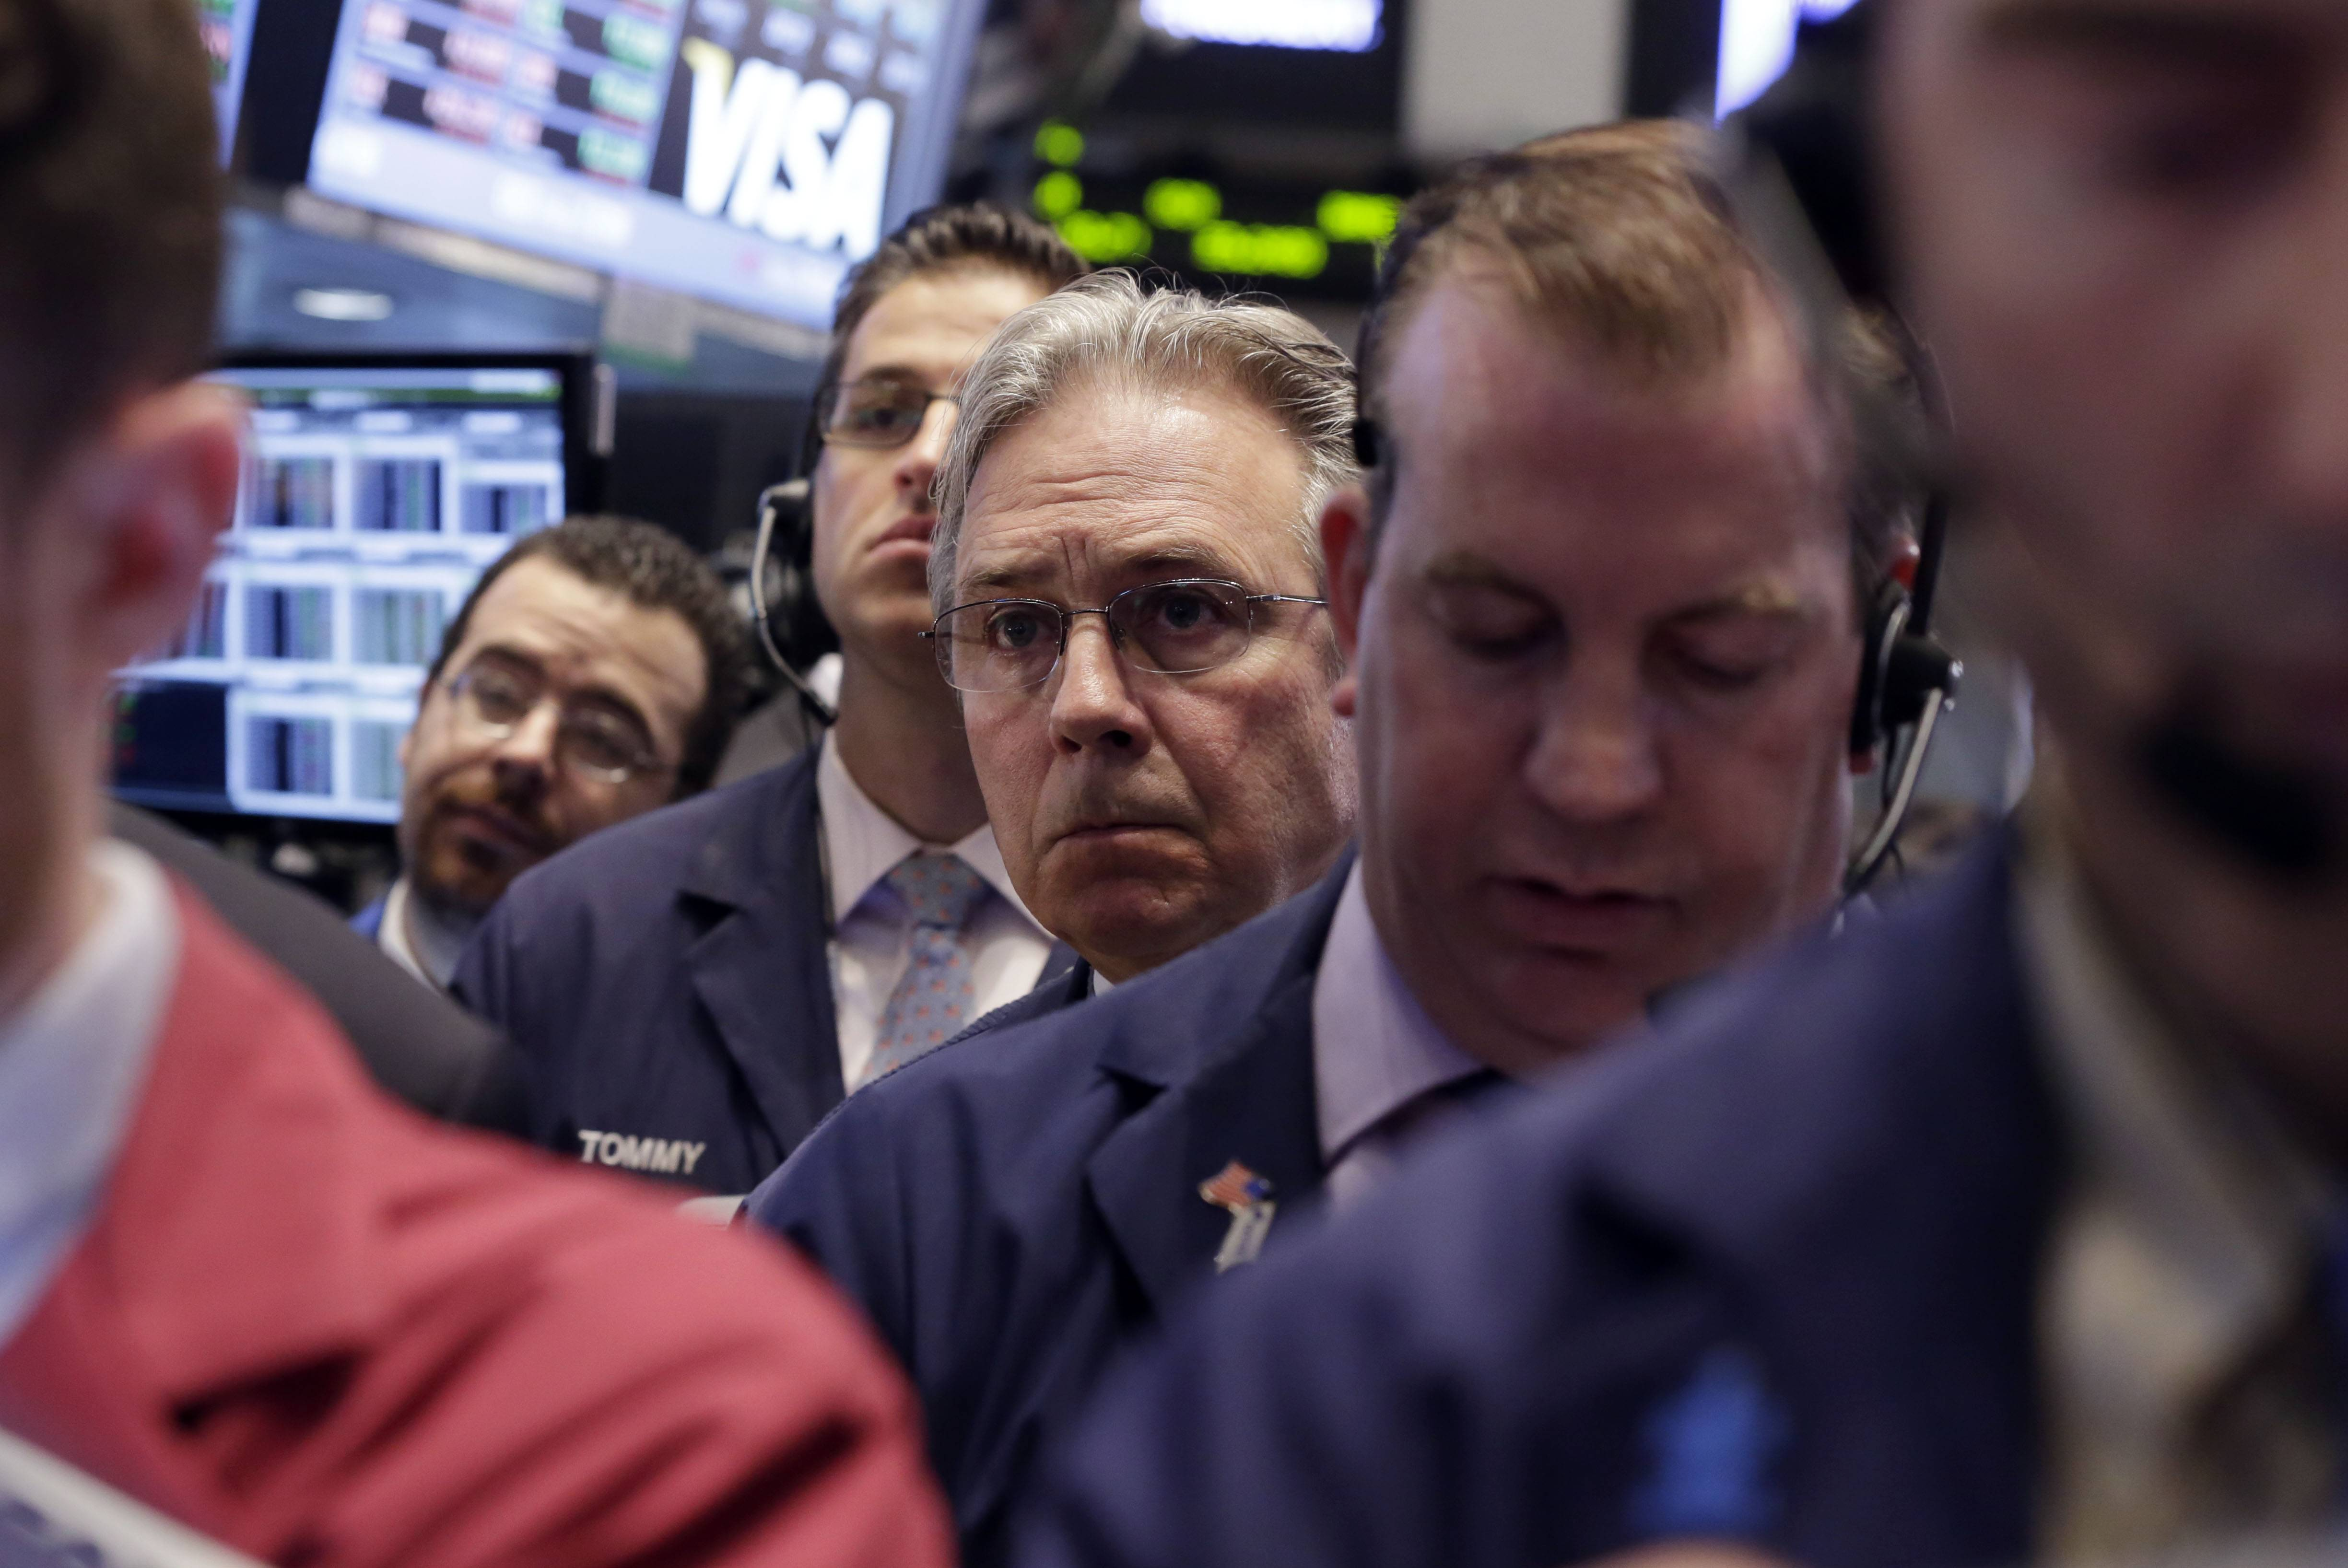 Thomas Kaye, third from right, works with fellow traders Friday on the floor of the New York Stock Exchange. Just a few months ago, investors thought the economy would expand rapidly this year. Now they're not so sure.